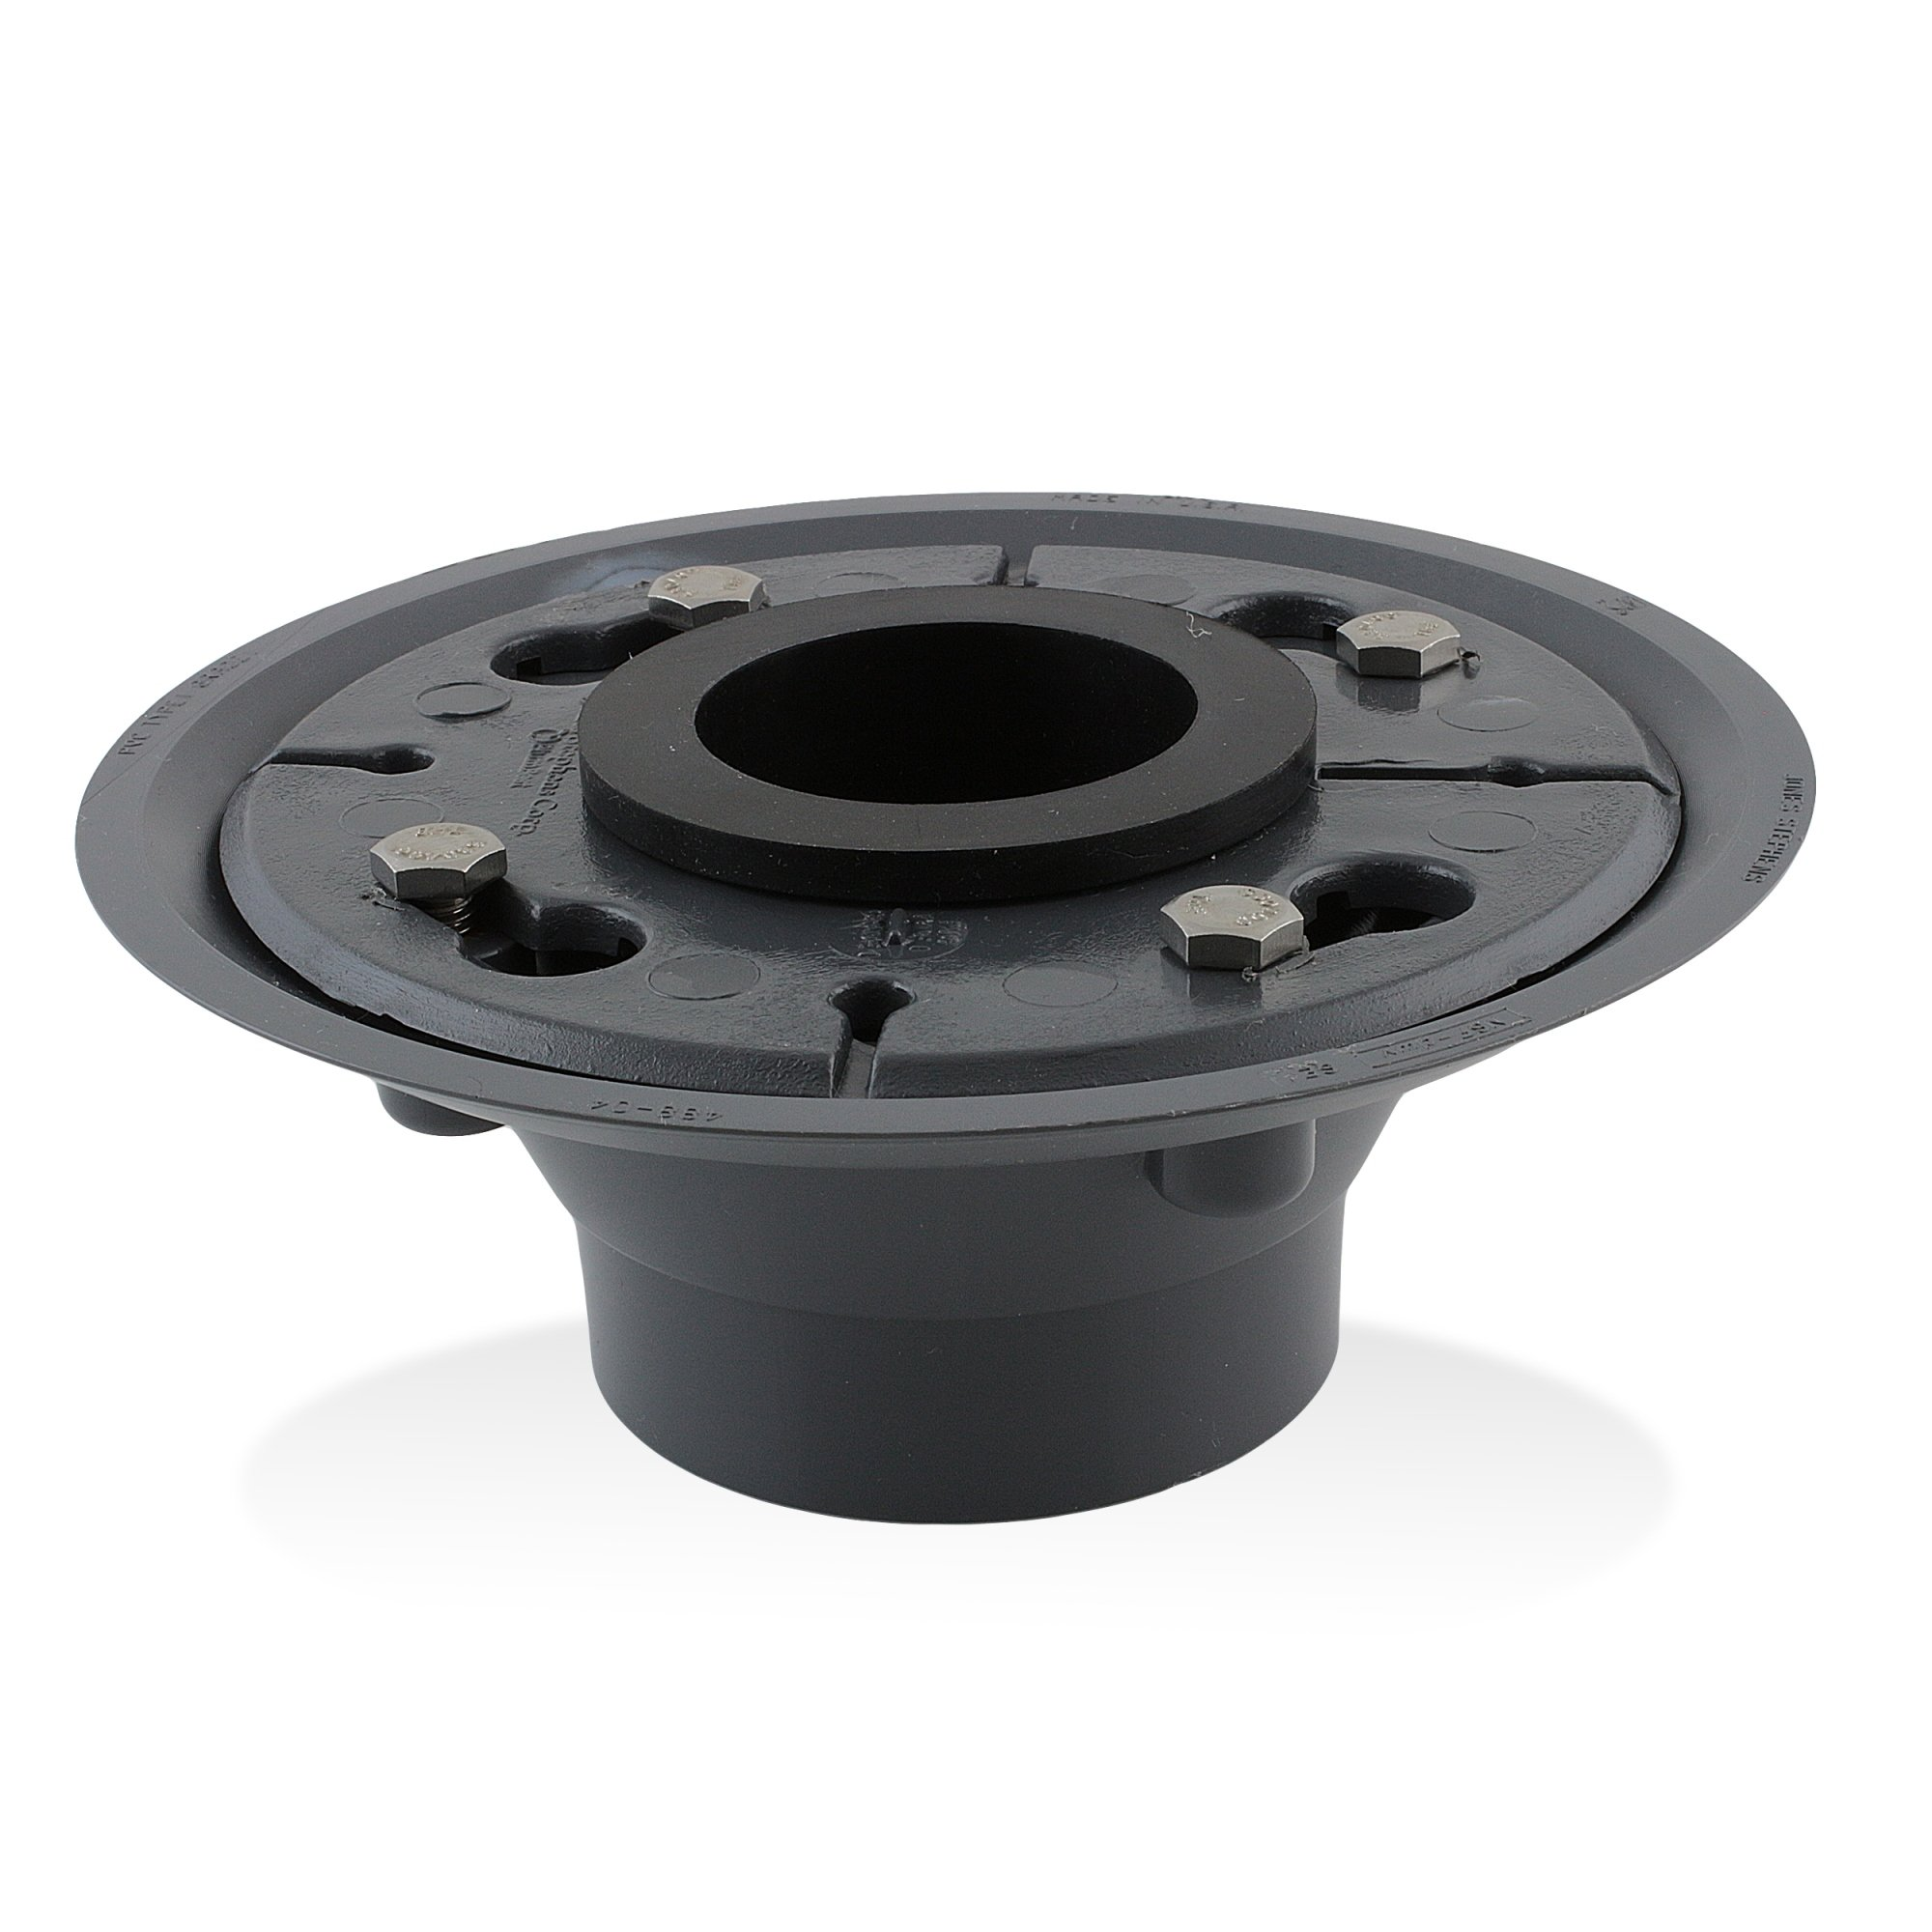 Luxe 2 Quot Pvc Shower Drain Base With Rubber Gasket Ebay